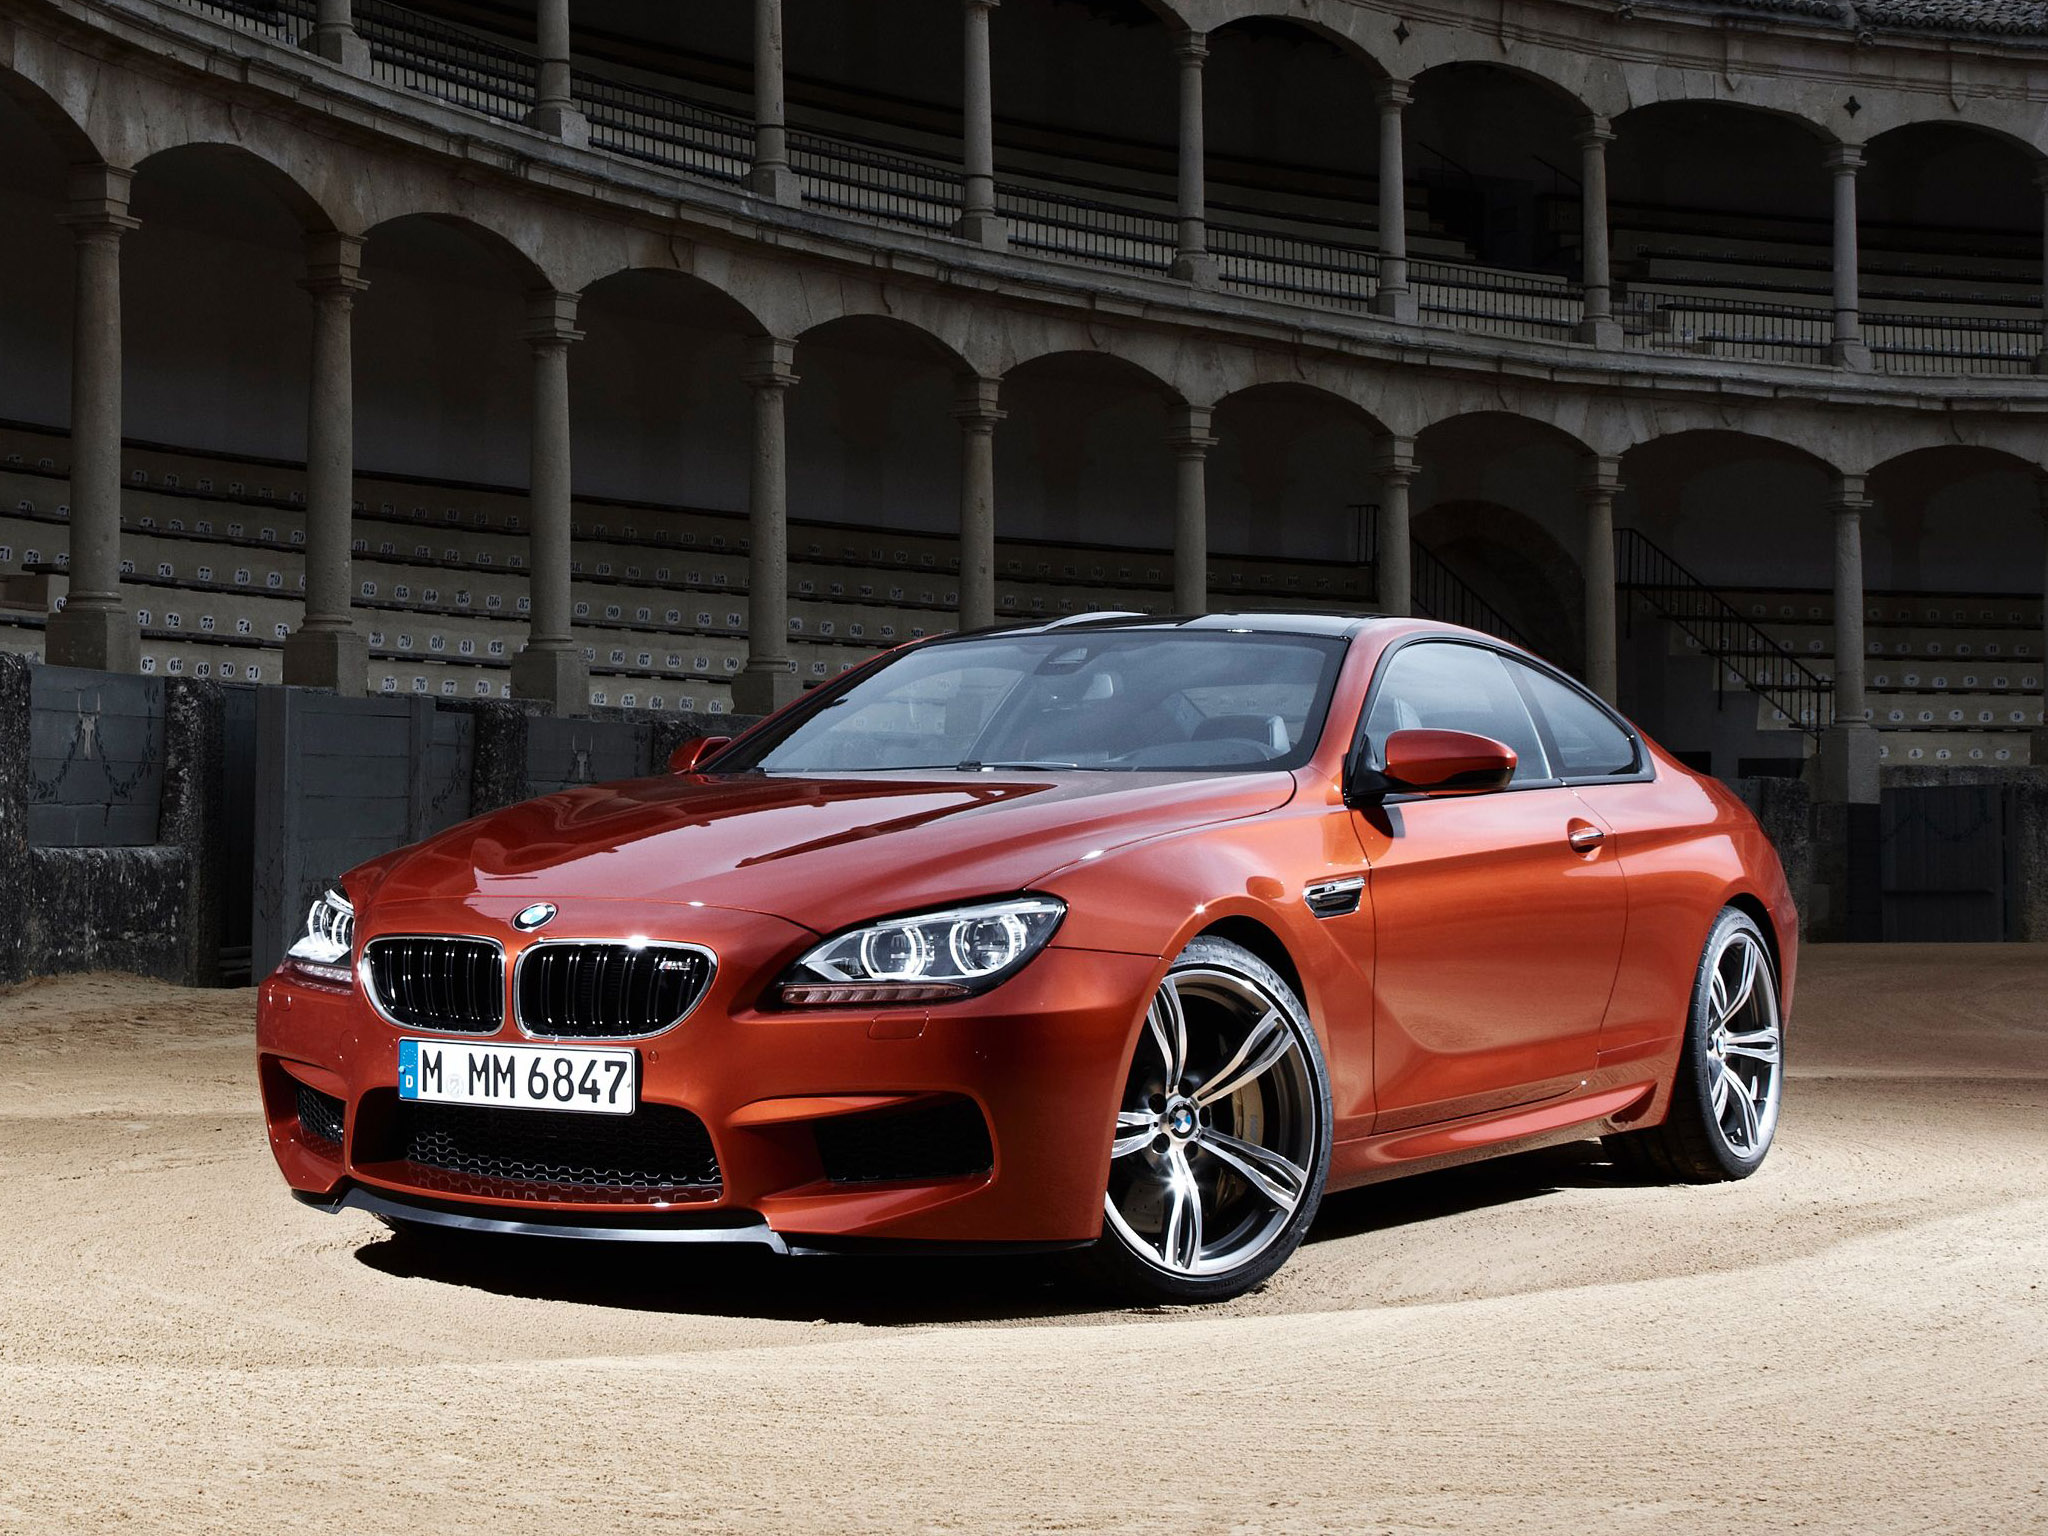 Bmw M6 Coupe F12 2012 Photo 40 Car In Pictures Car Photo Gallery